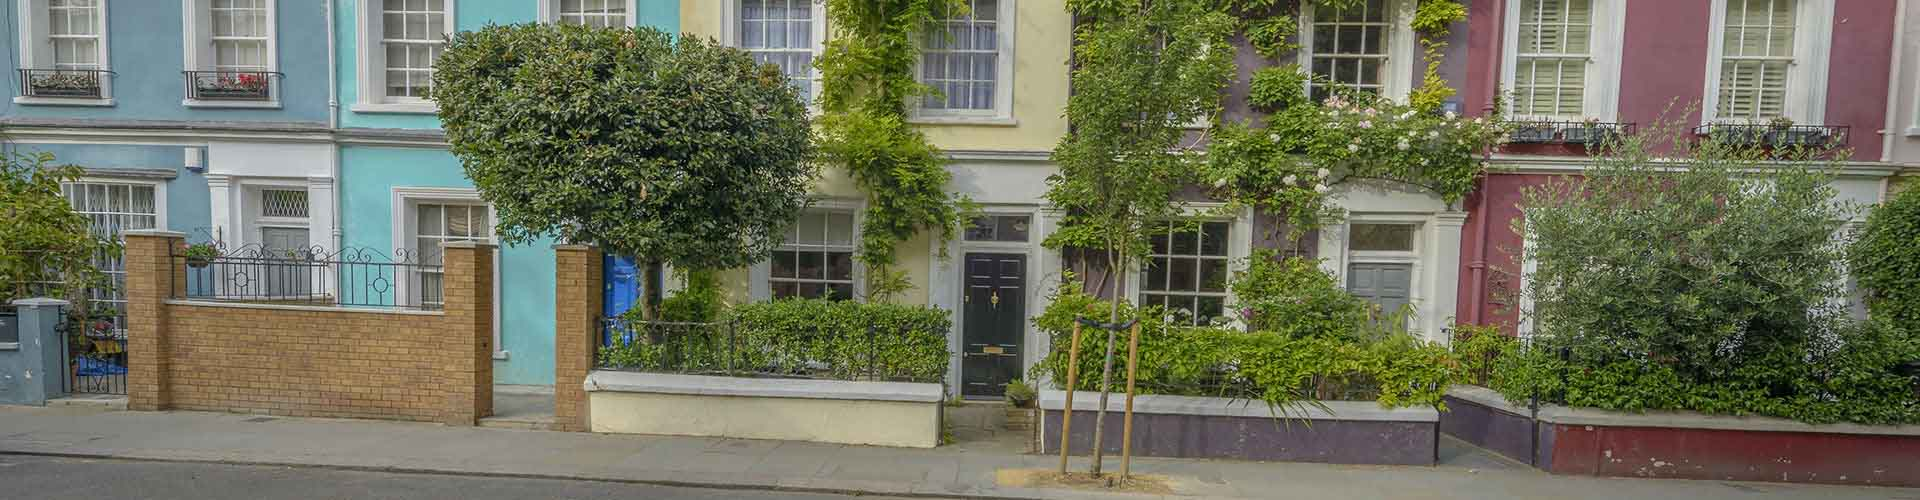 London – Hotels in Notting Hill. Maps of London, Photos and Reviews for each Hotel in London.